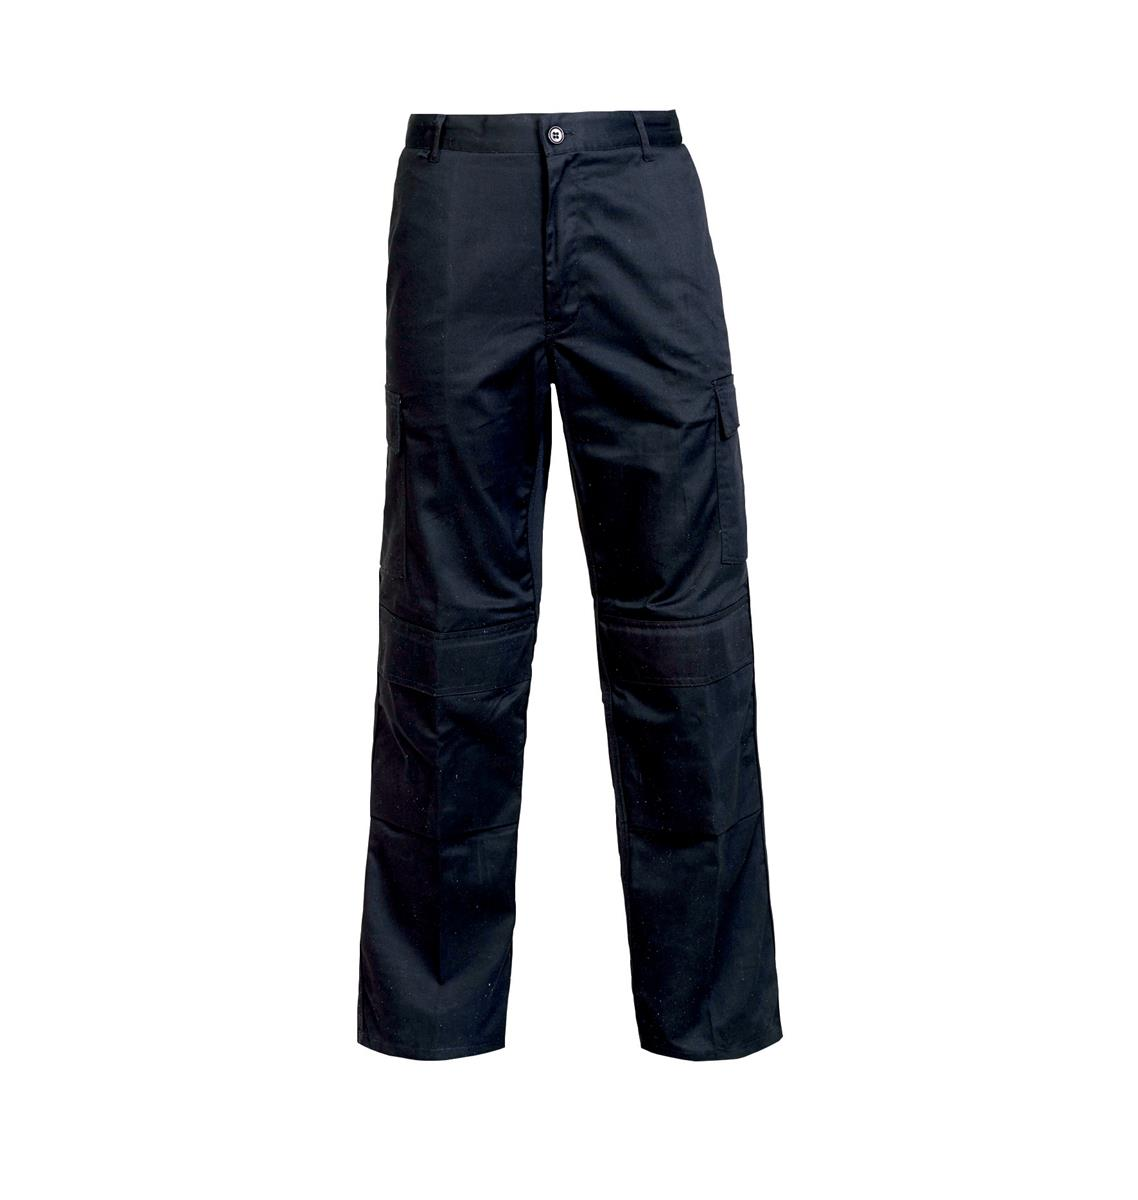 Combat Trousers Polycotton with Pockets Size 38in Long Black Ref PCTHWBL38T *1-3 Days Lead Time*